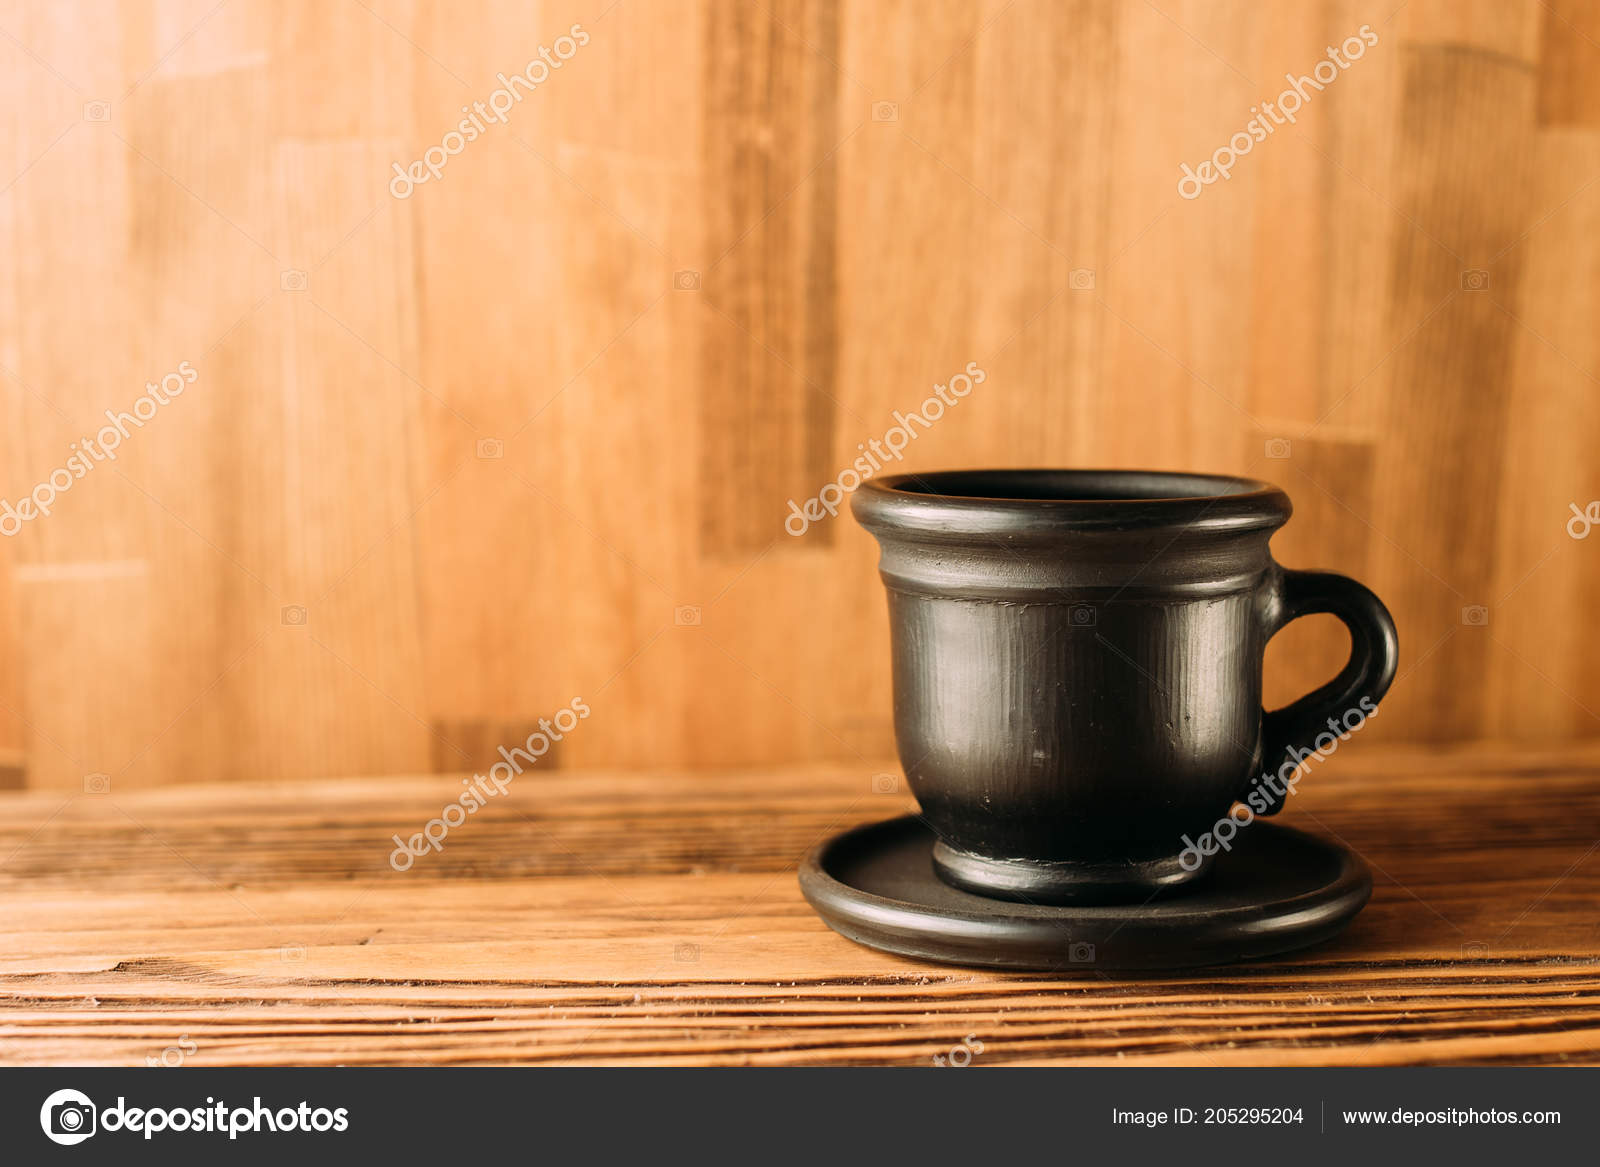 Black Clay Mug Coffee White Background Clay Cup Black Color Stock Photo C Denysvynnyk 205295204